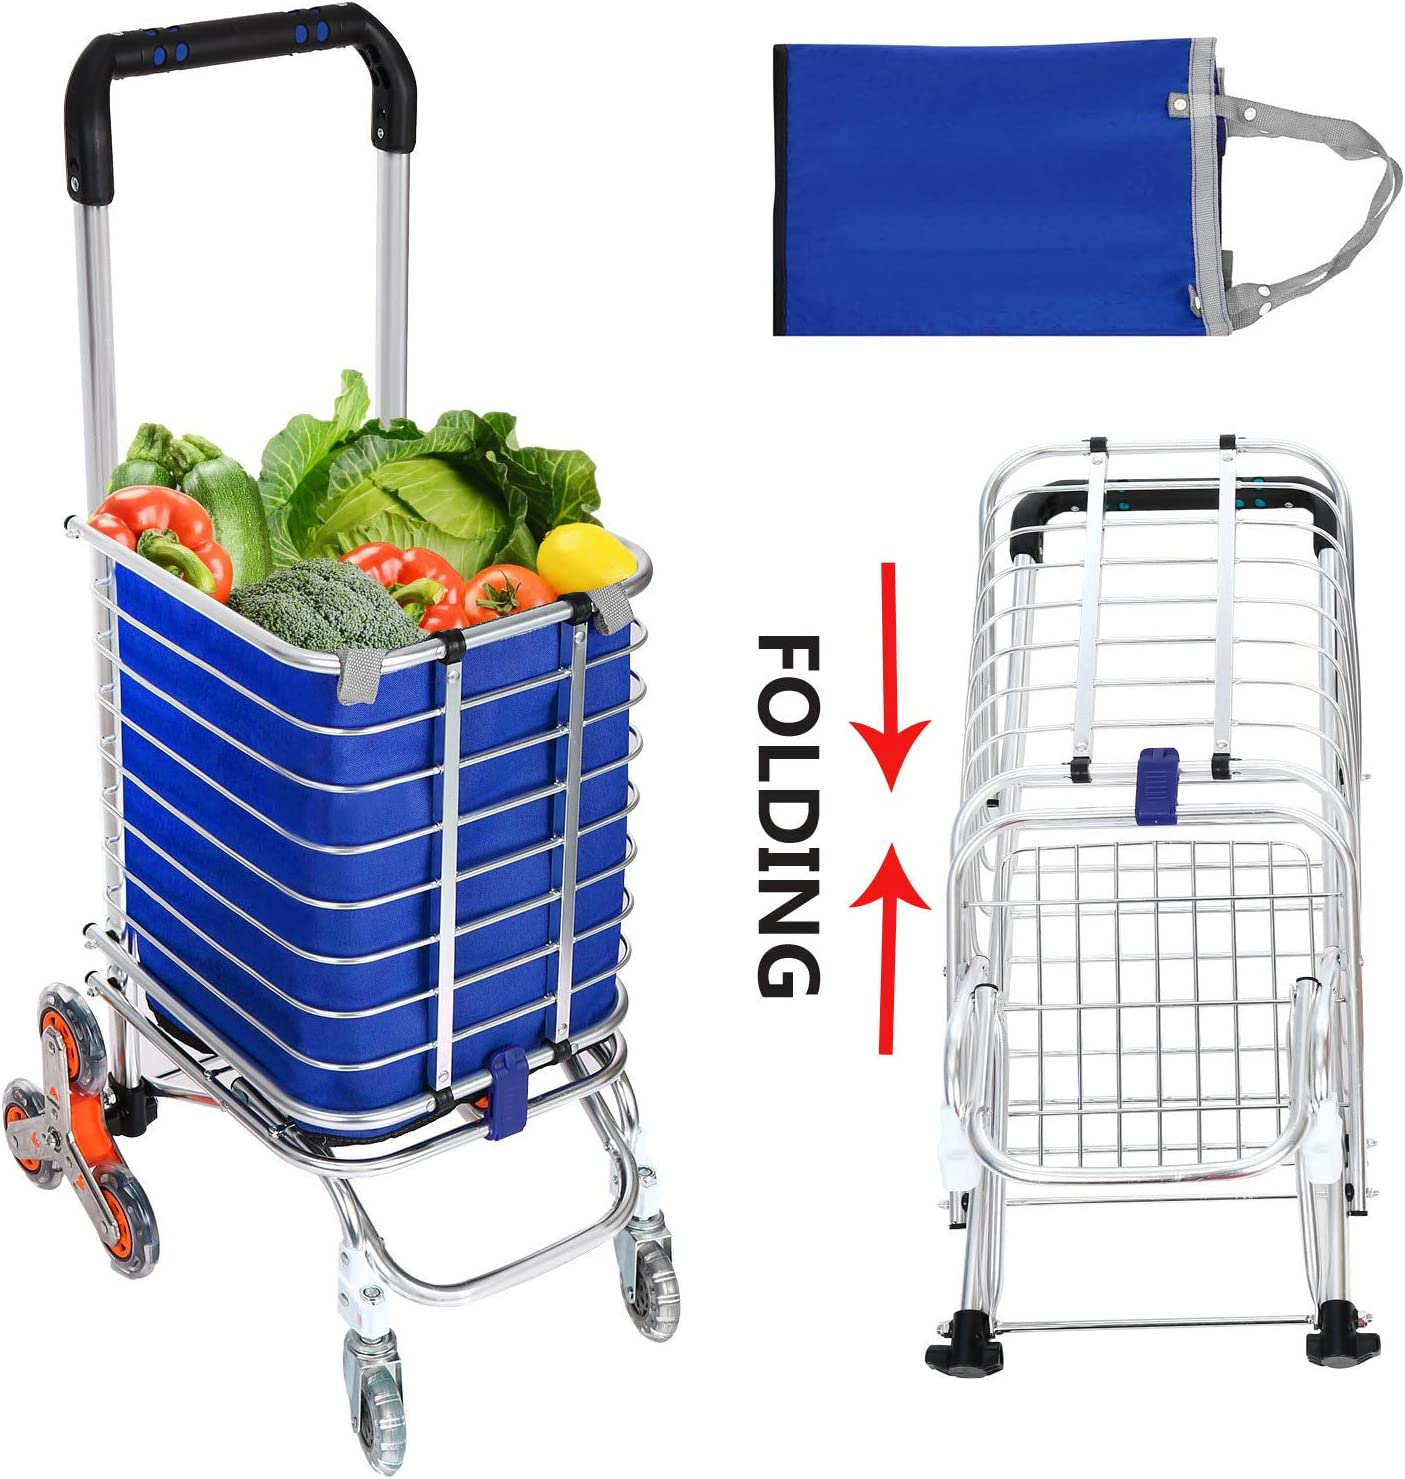 Folding Grocery Shopping Cart, Aluminum Double Handle Climbing Grocery Utility Cart with Removable Waterproof Oxford Cloth Bag and 8 Rolling Wheel for Stairs 37 Handle Length